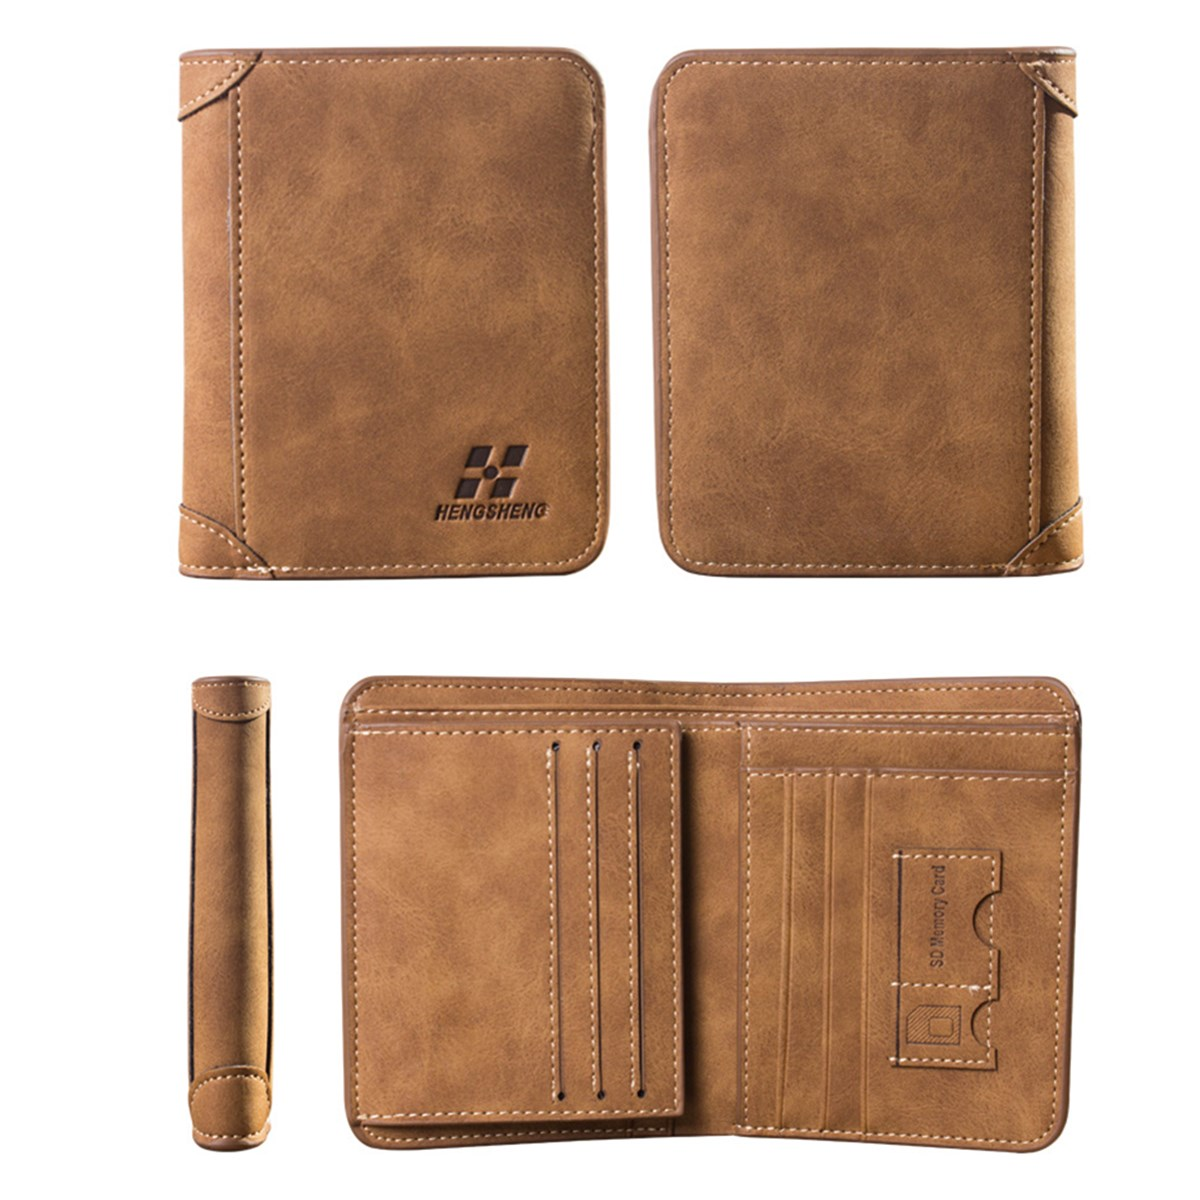 Vintage Men/'s PU Leather Credit Card Holder ID RFID Blocking Trifold Wallet nEW